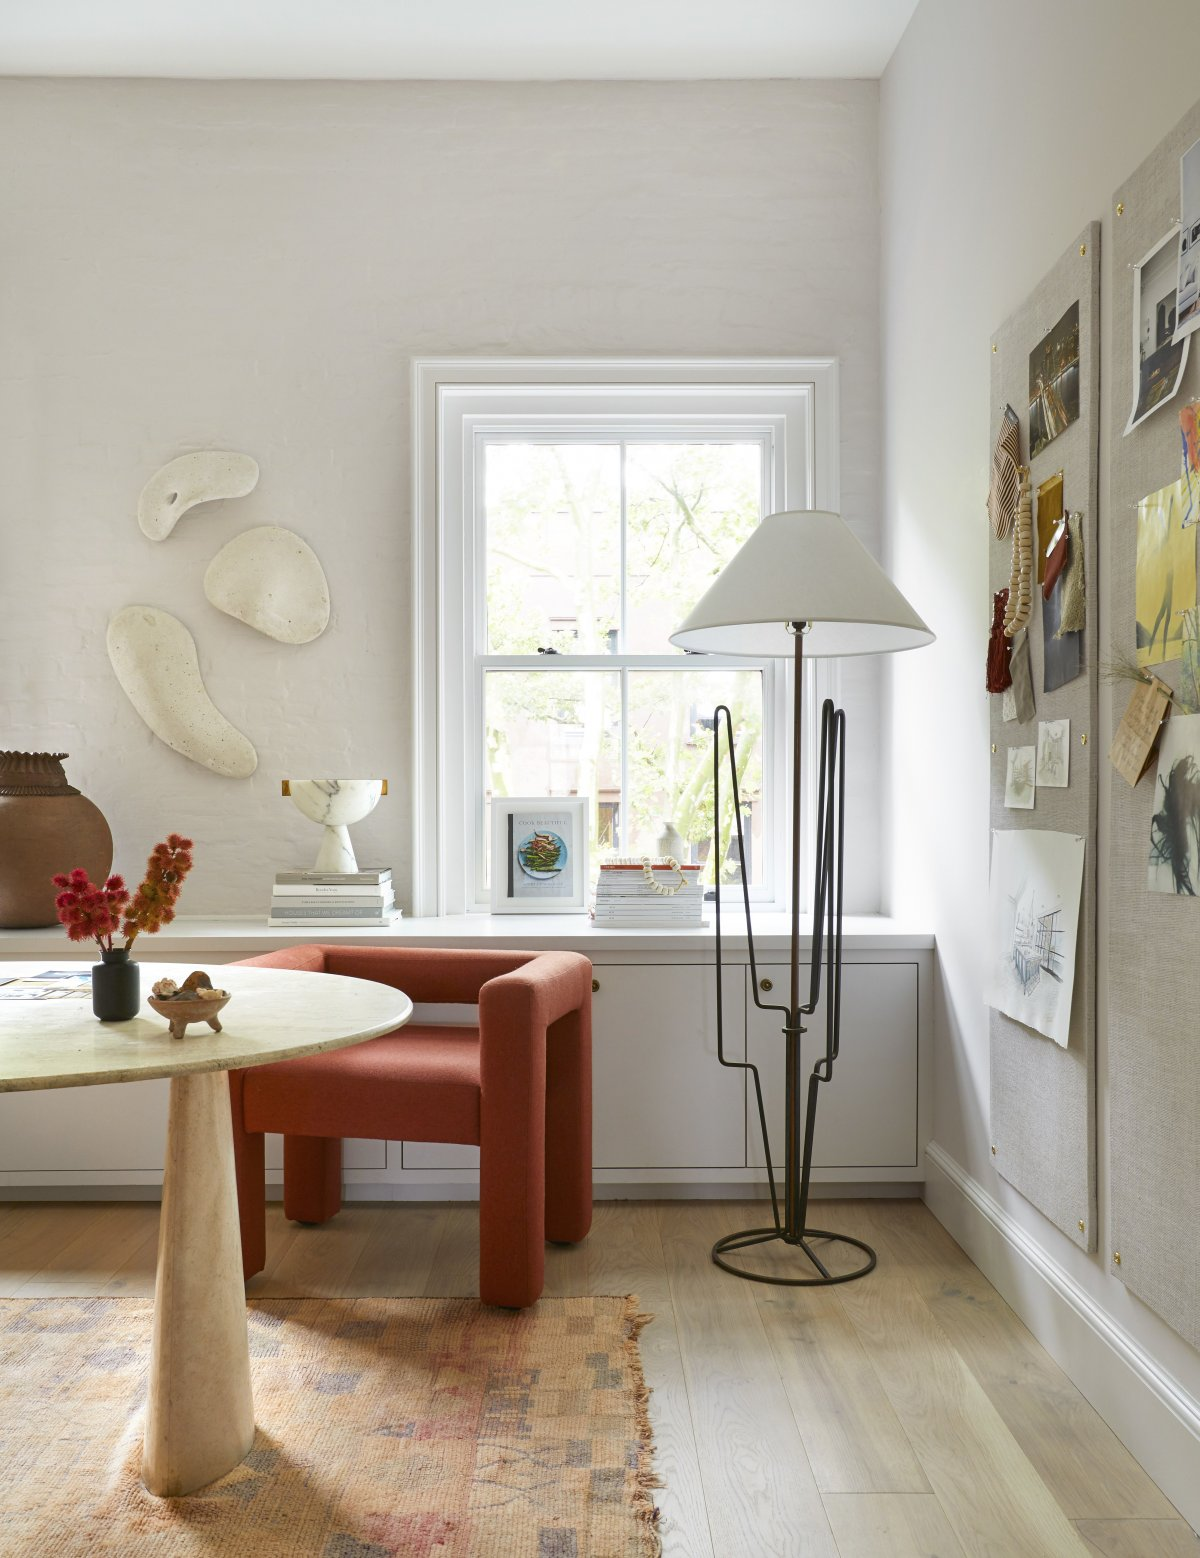 Brooklyn Townhouse design by Athena Calderone